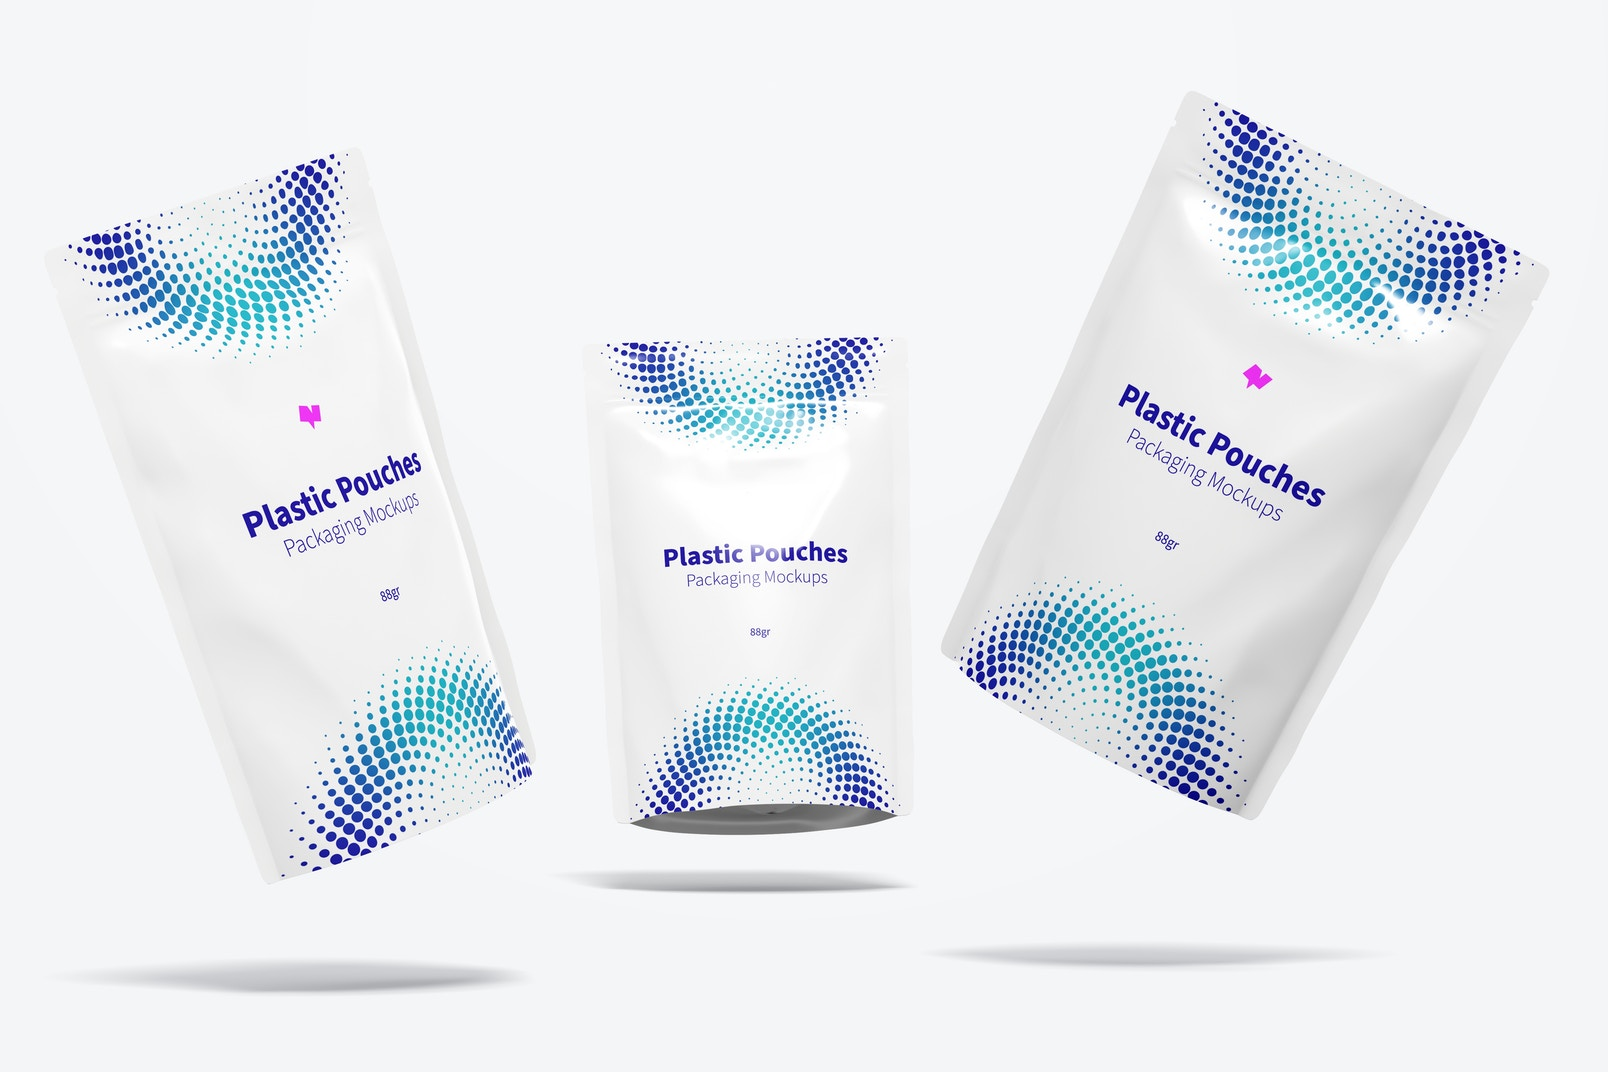 Plastic Pouches Packaging Mockup, Falling